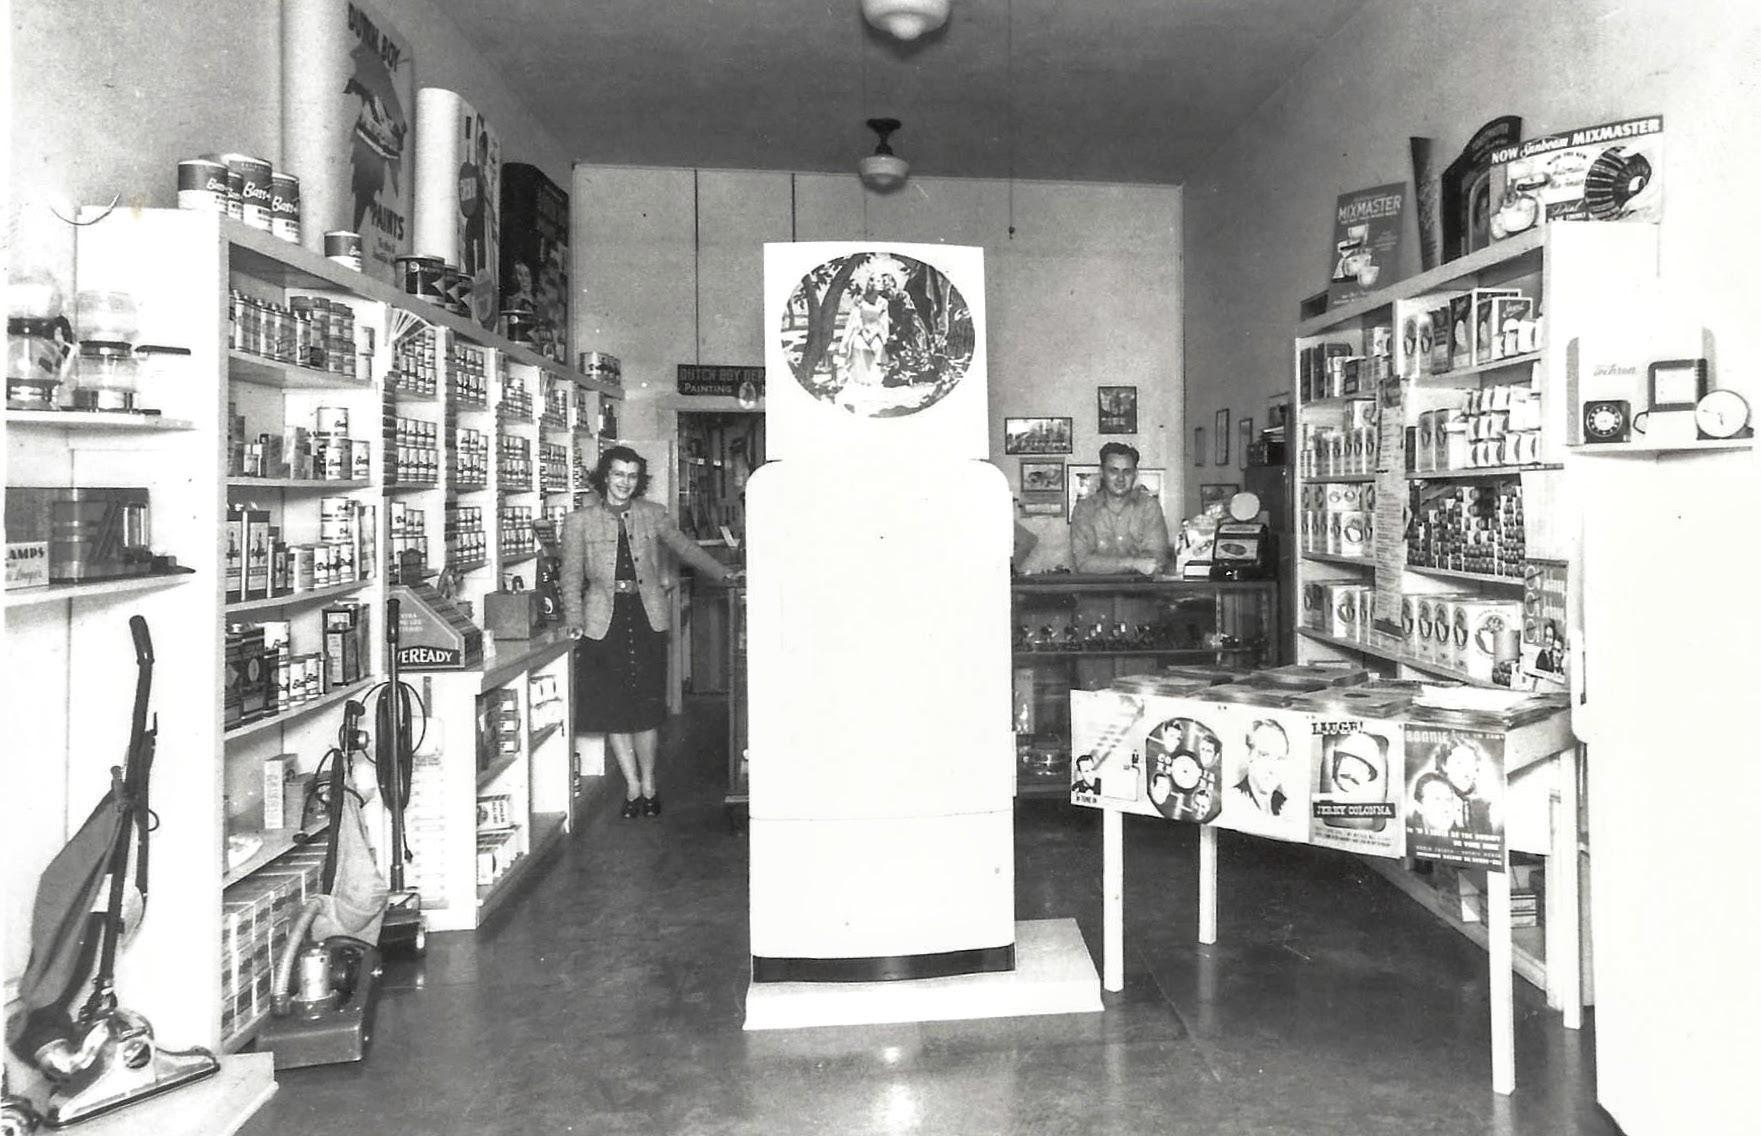 Lenore & Frank Holly in their retail store at Brea Electric. Back then, they sold refrigerators, TV's, radios, vacuum cleaners, you name it. Nowadays, they provide a wide array of electrical installations. No more appliances, however. (Photo Courtesy of Richard Holly)